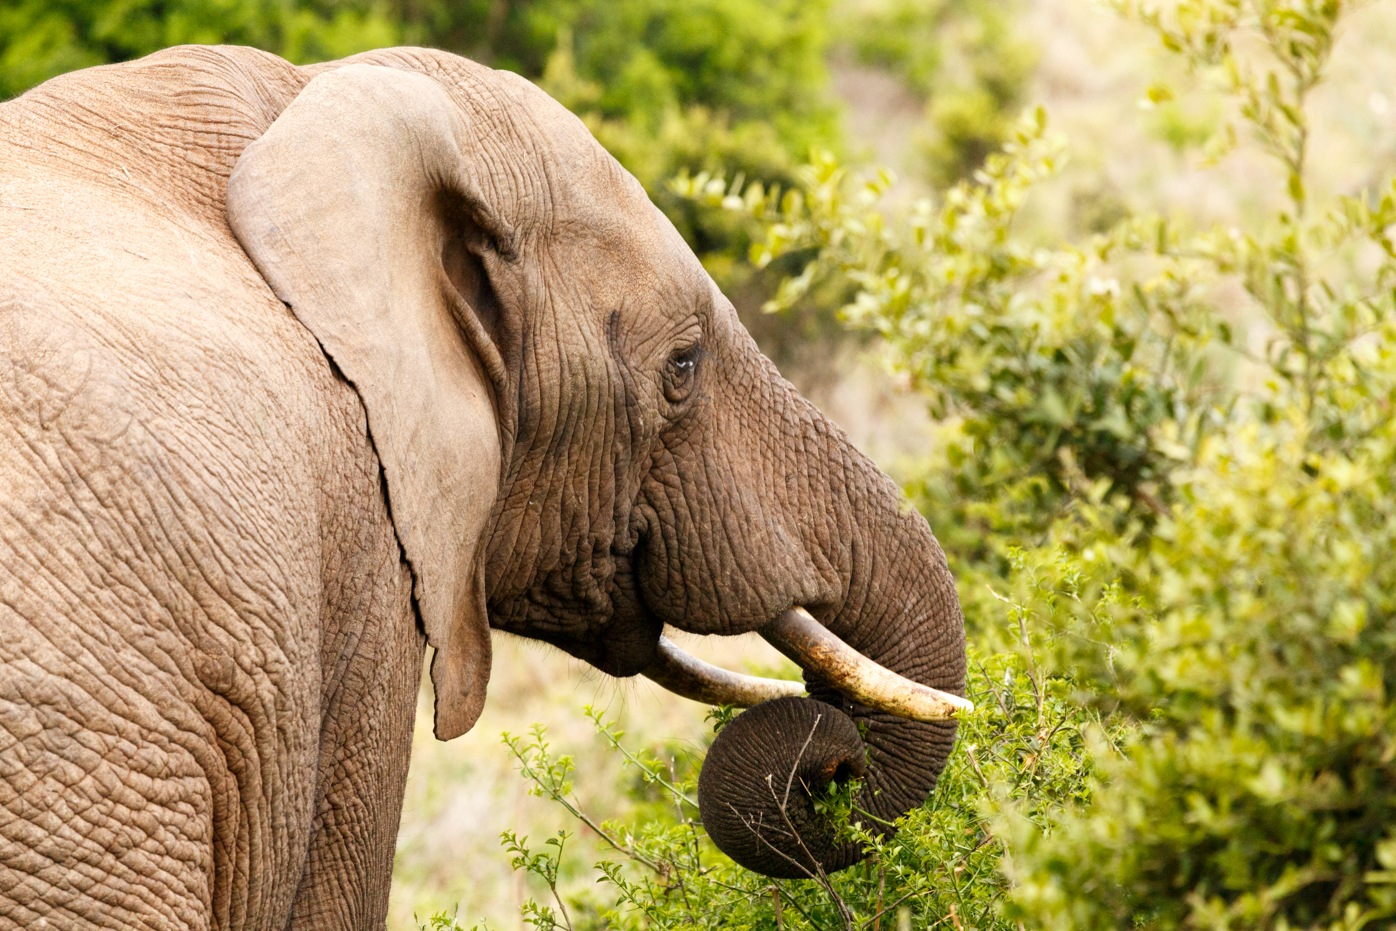 Elephant with curled up trunk by Charissa de Scande Lotter